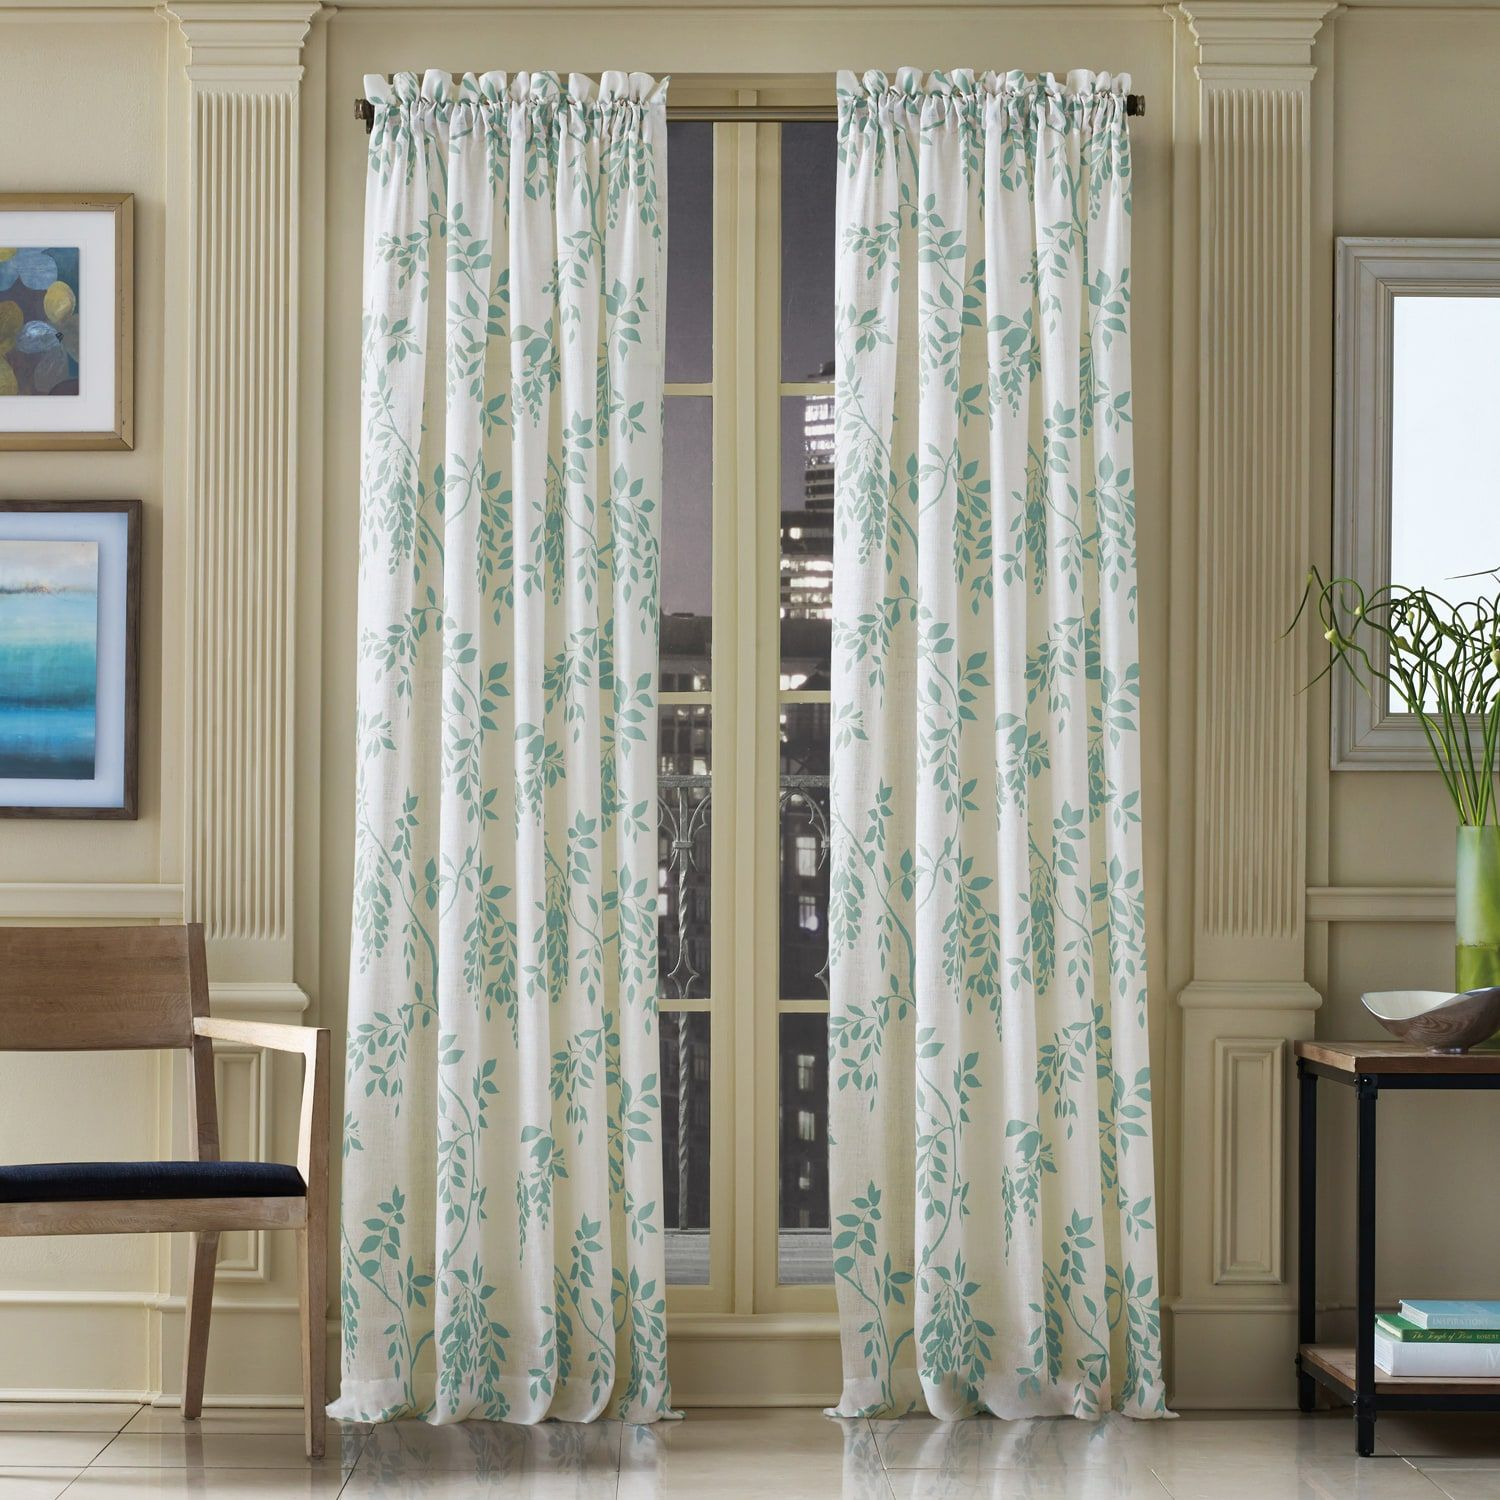 Wildwood Blue 95 Curtain Panel Curtains Curtain Patterns Curtains